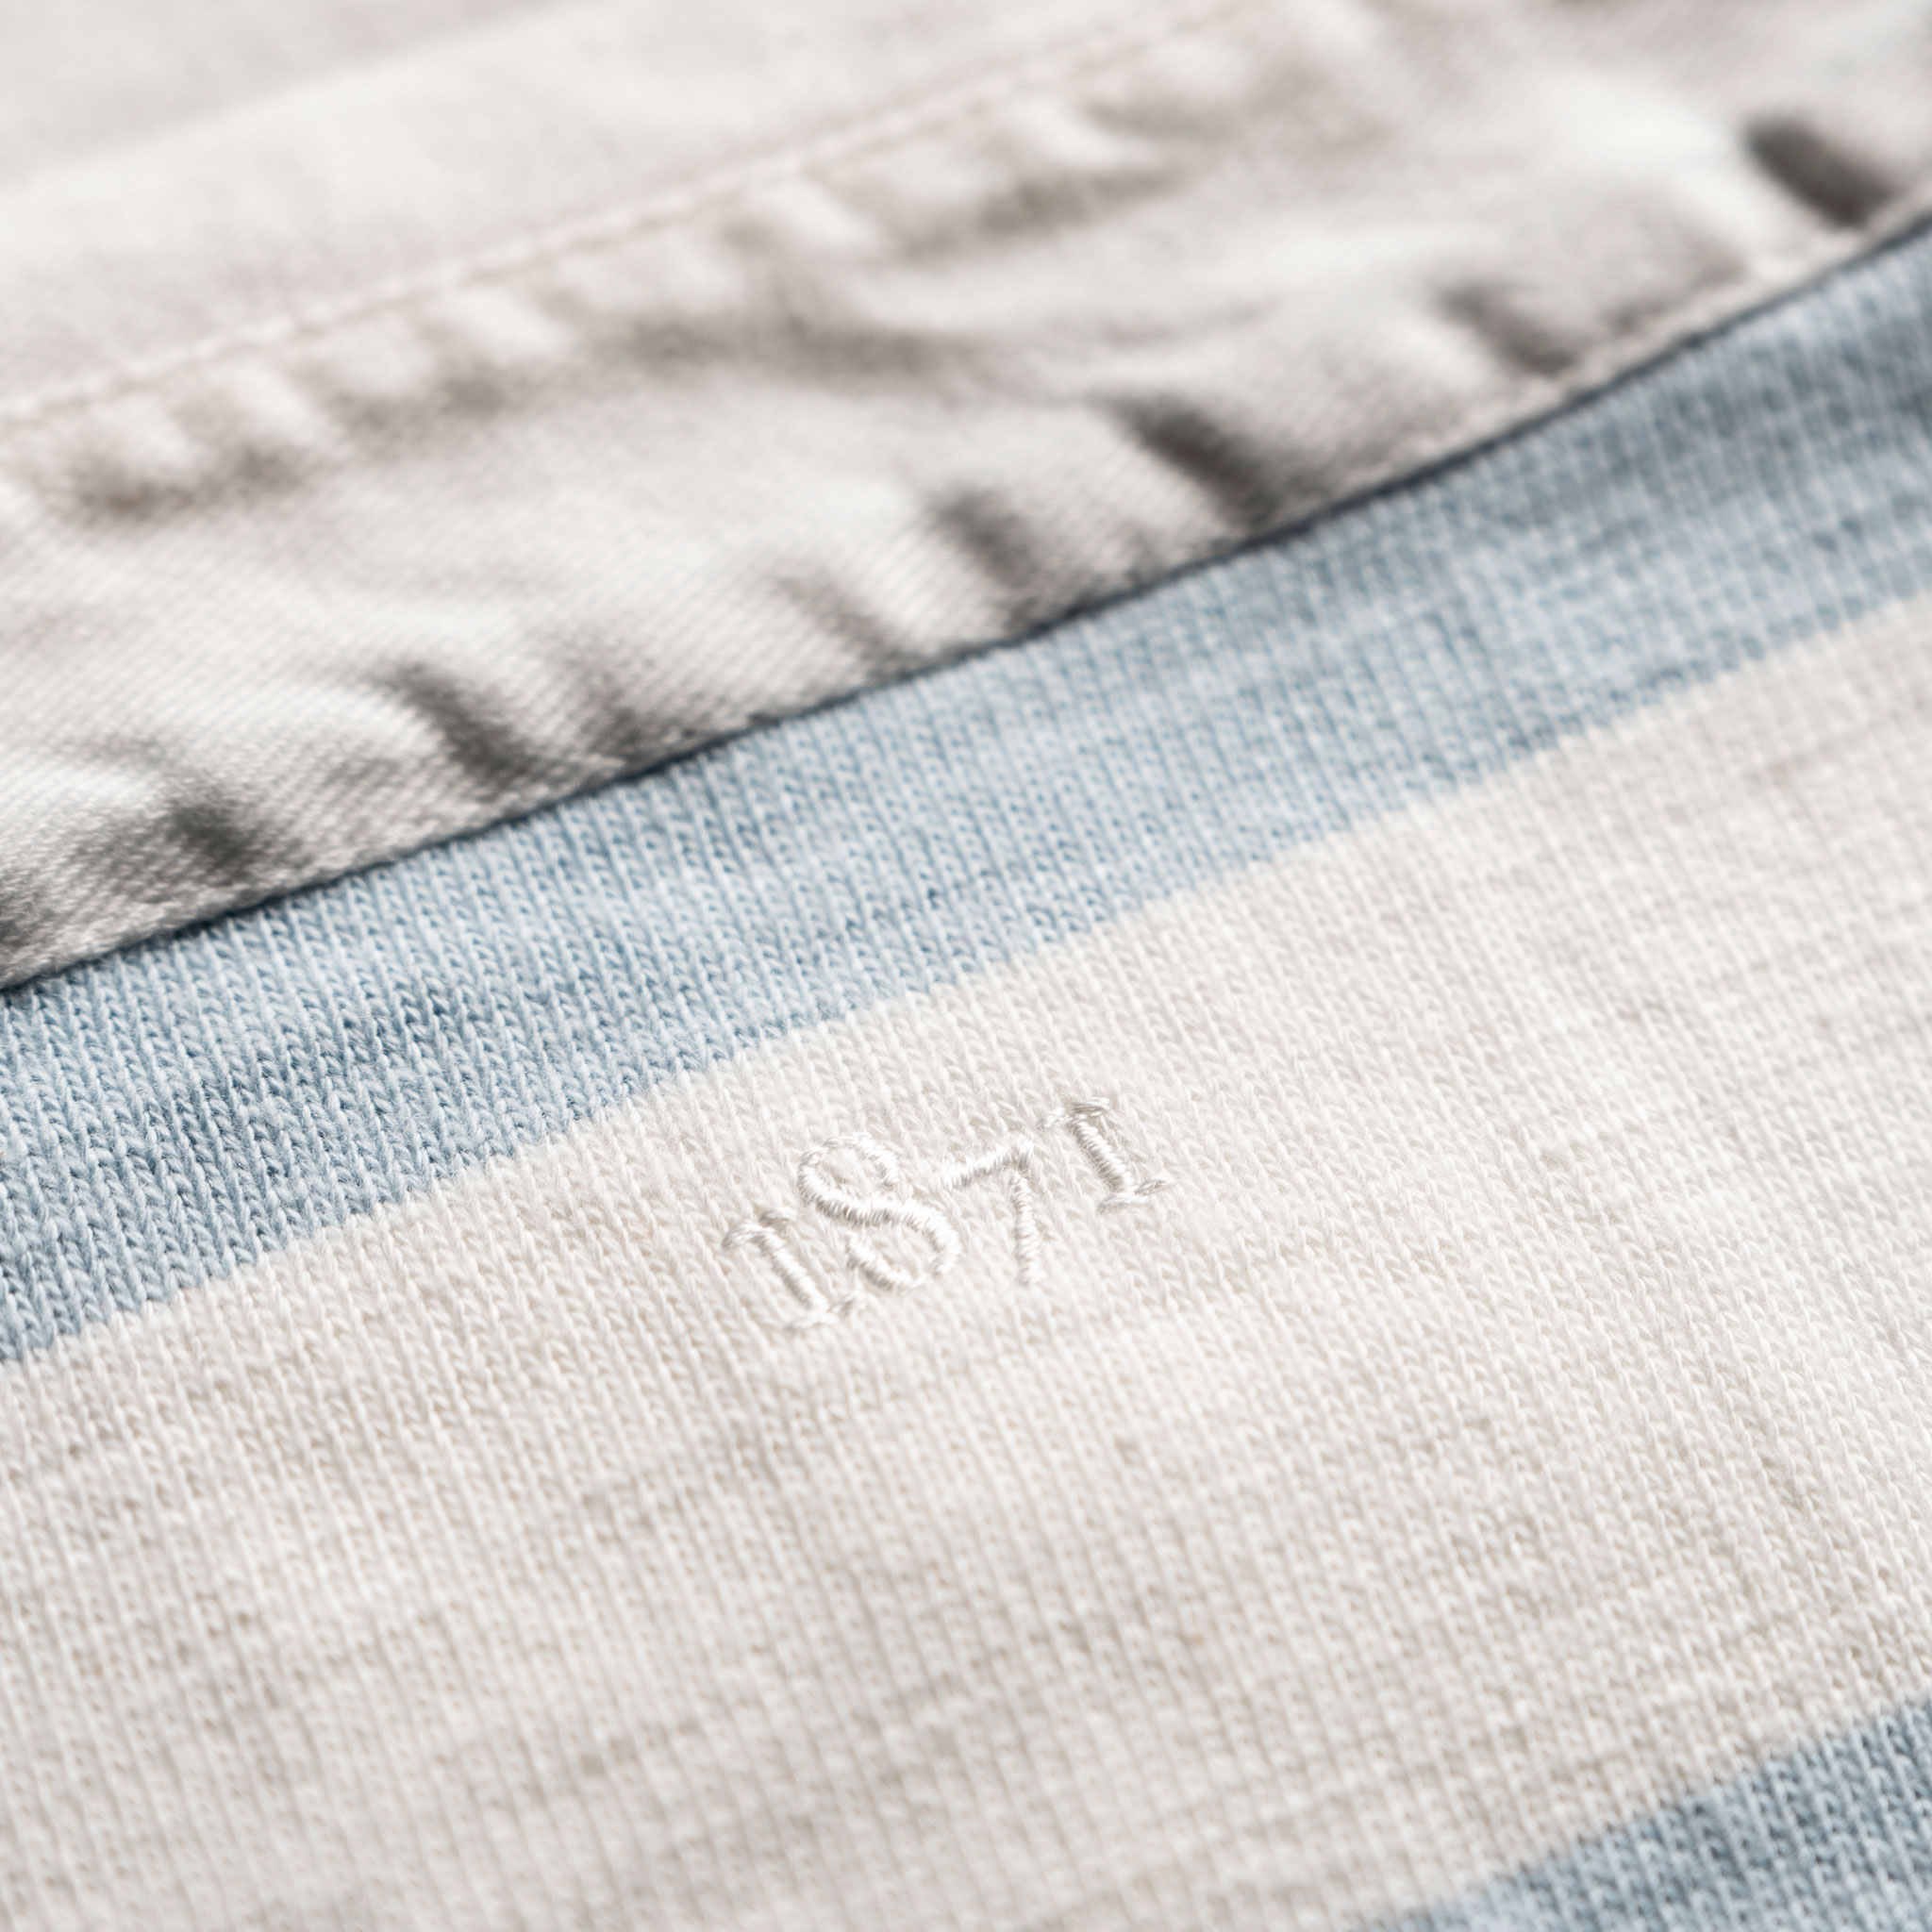 Classic Sky Blue and White 1871 Vintage Rugby Shirt_1871